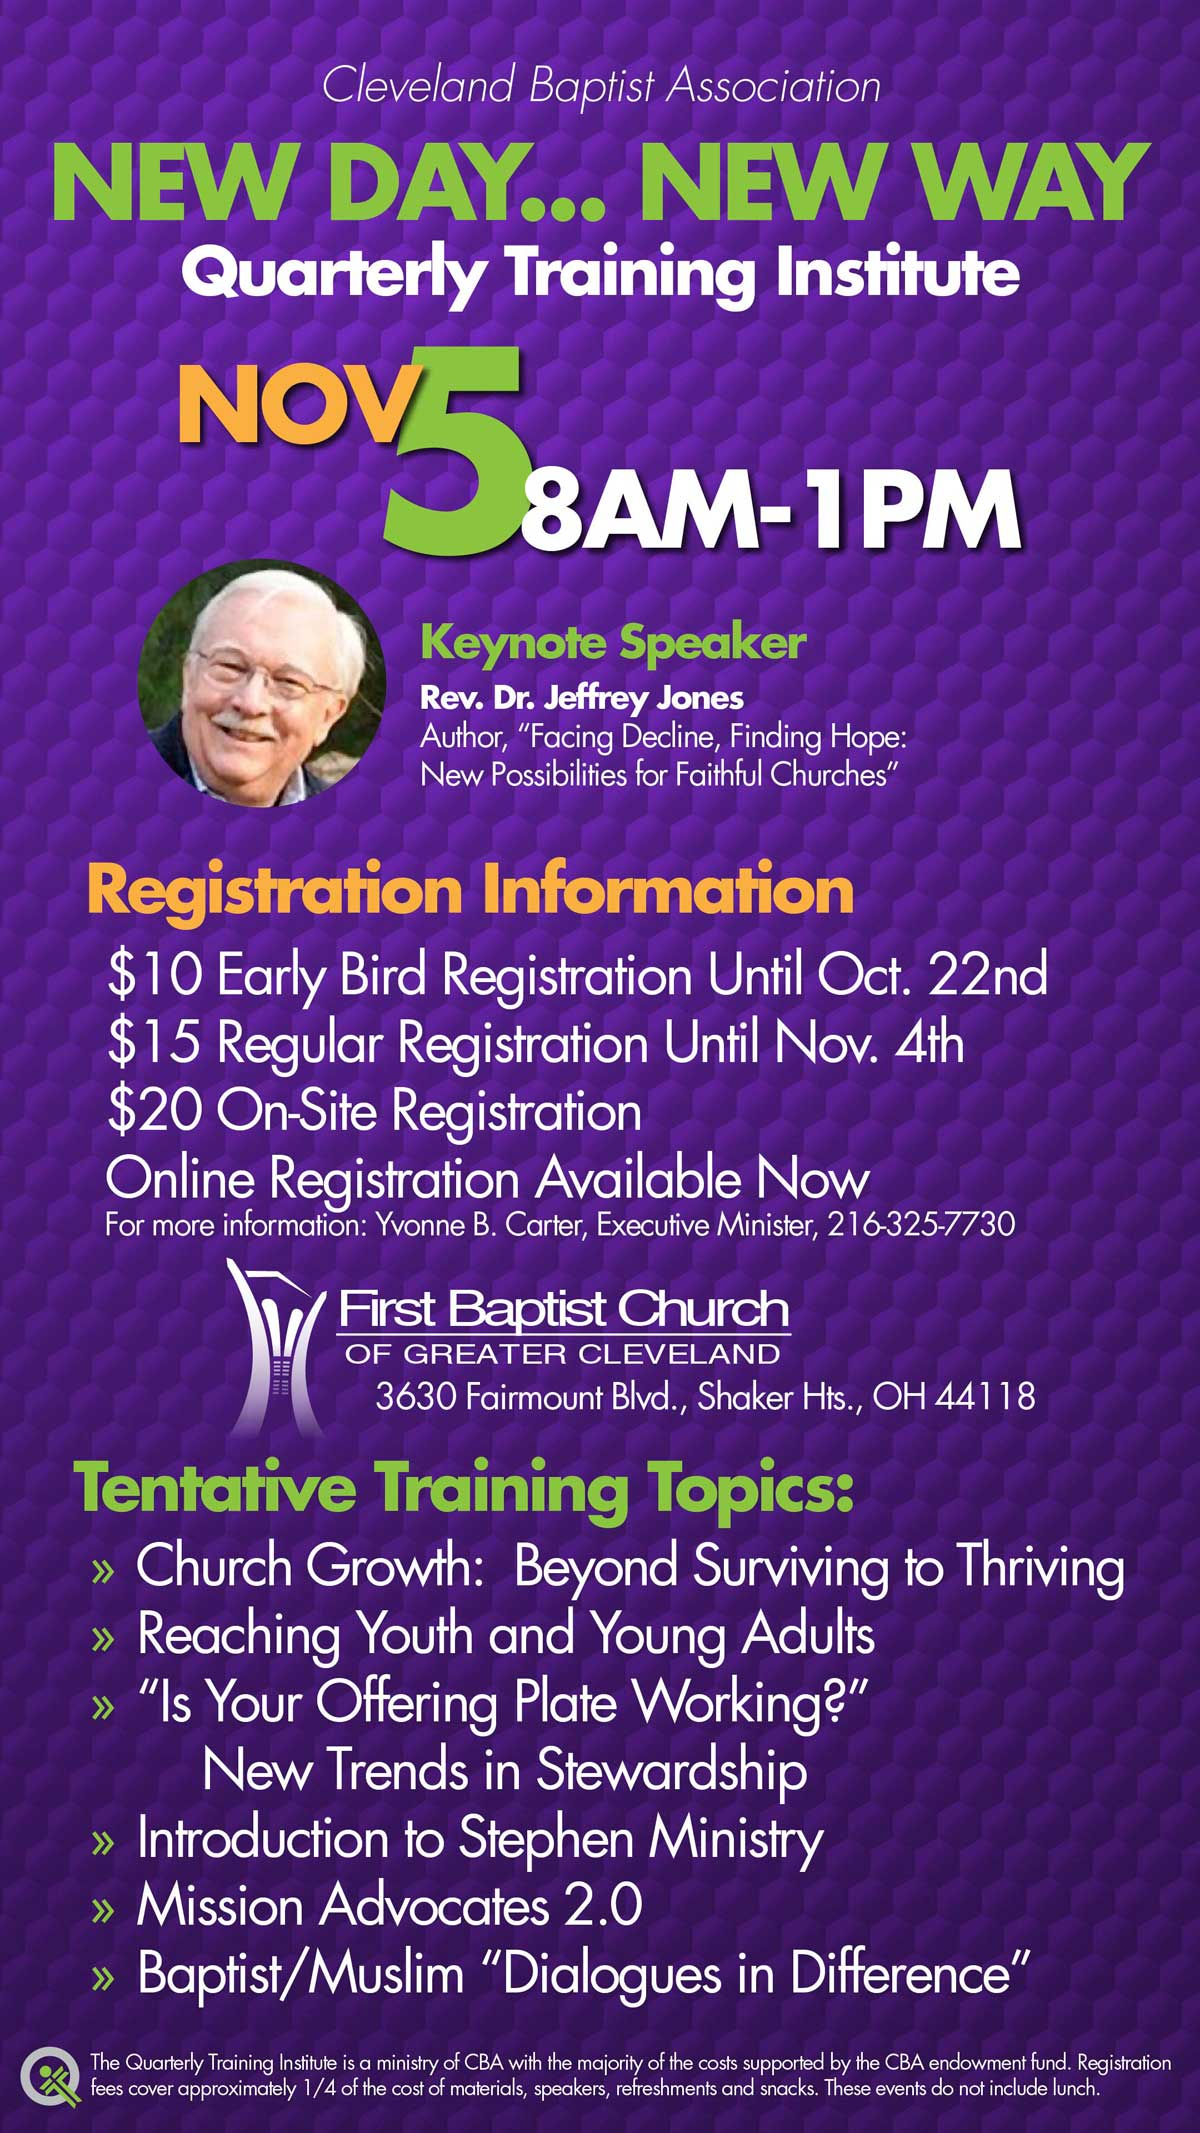 New Day... New Way Nov 8AM-1PM